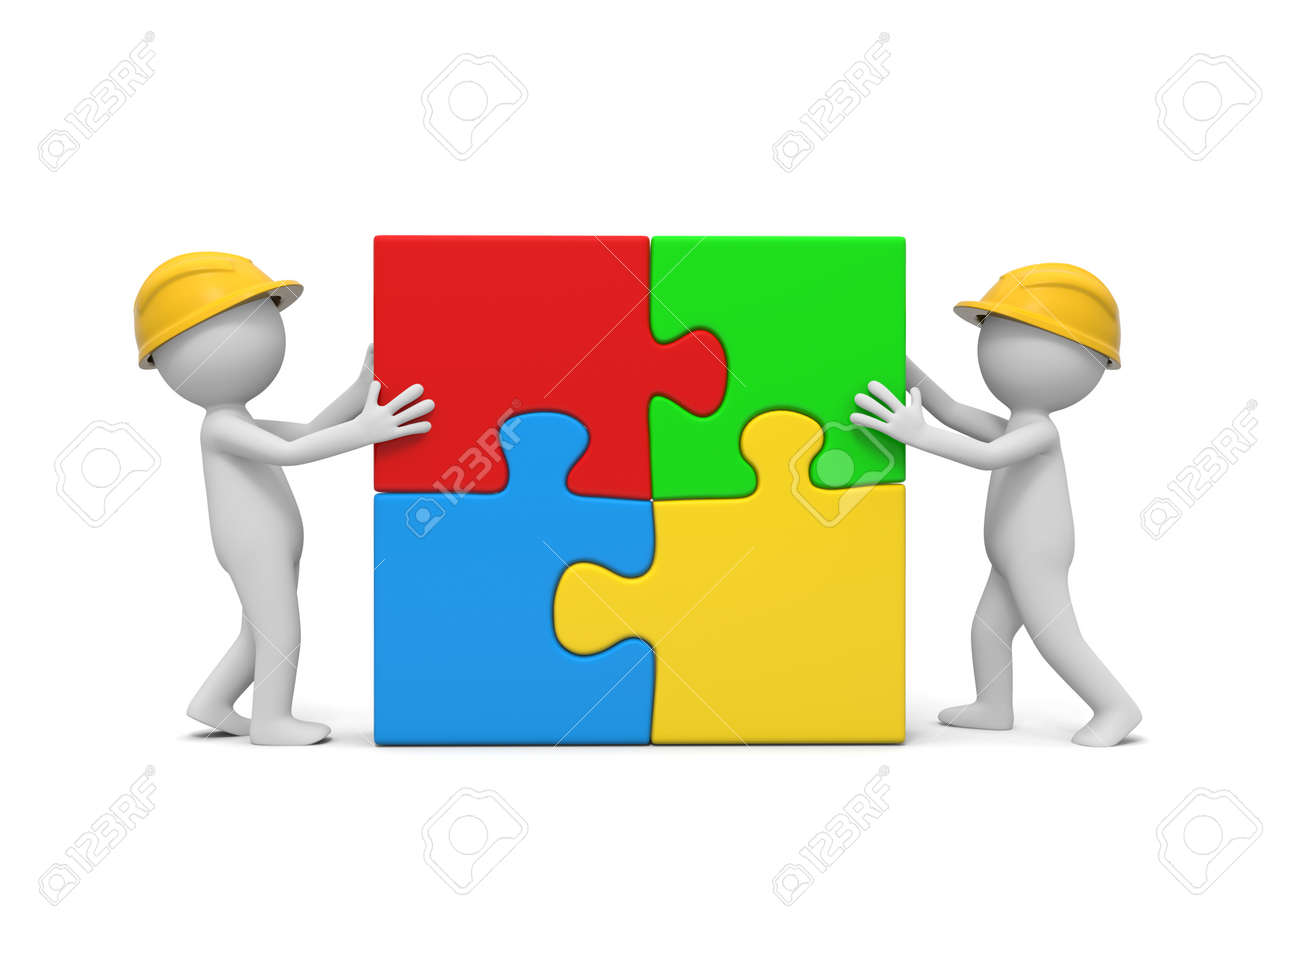 Two 3d Man Assembling 4 Puzzle Pieces Stock Photo, Picture And ...